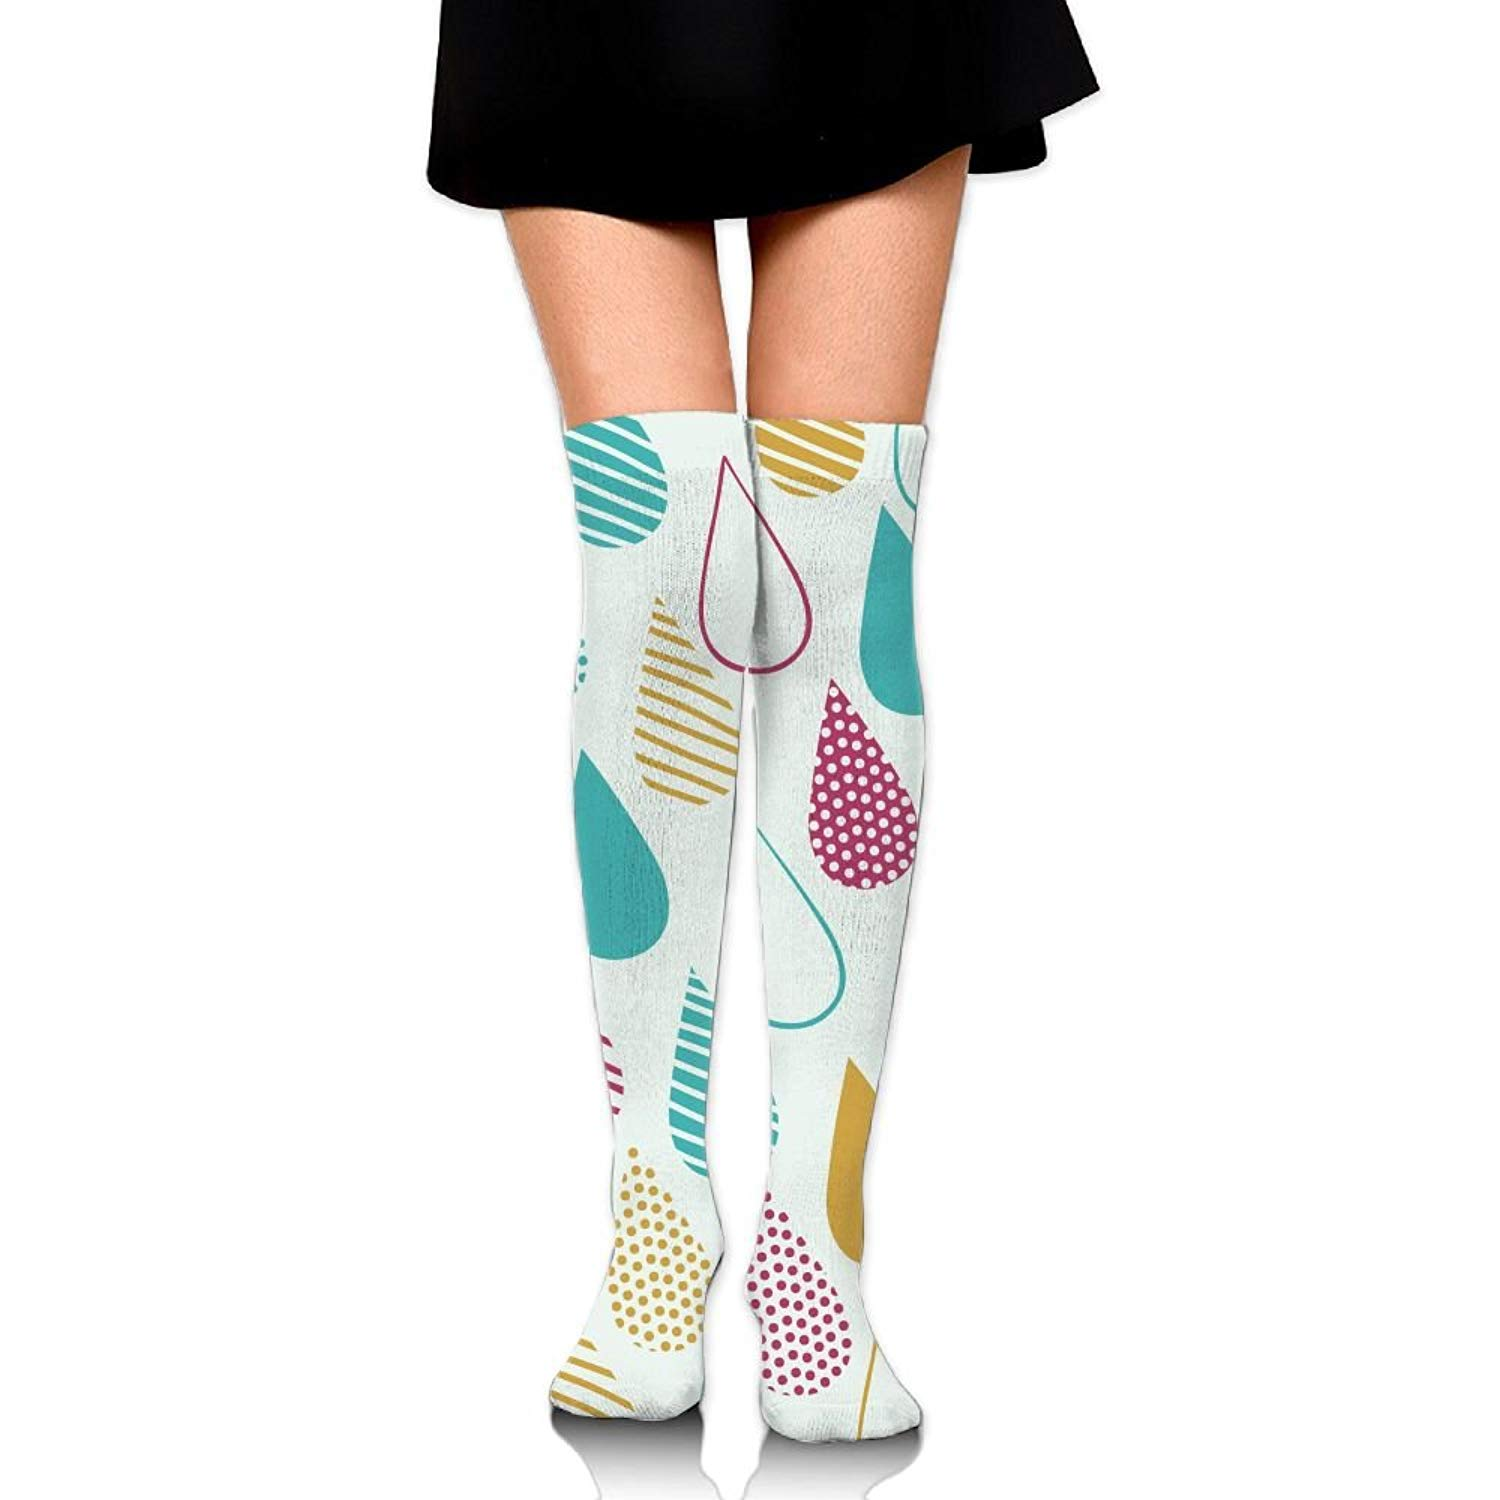 Zaqxsw Raindrop Women Retro Thigh High Socks Girls Socks For Womens